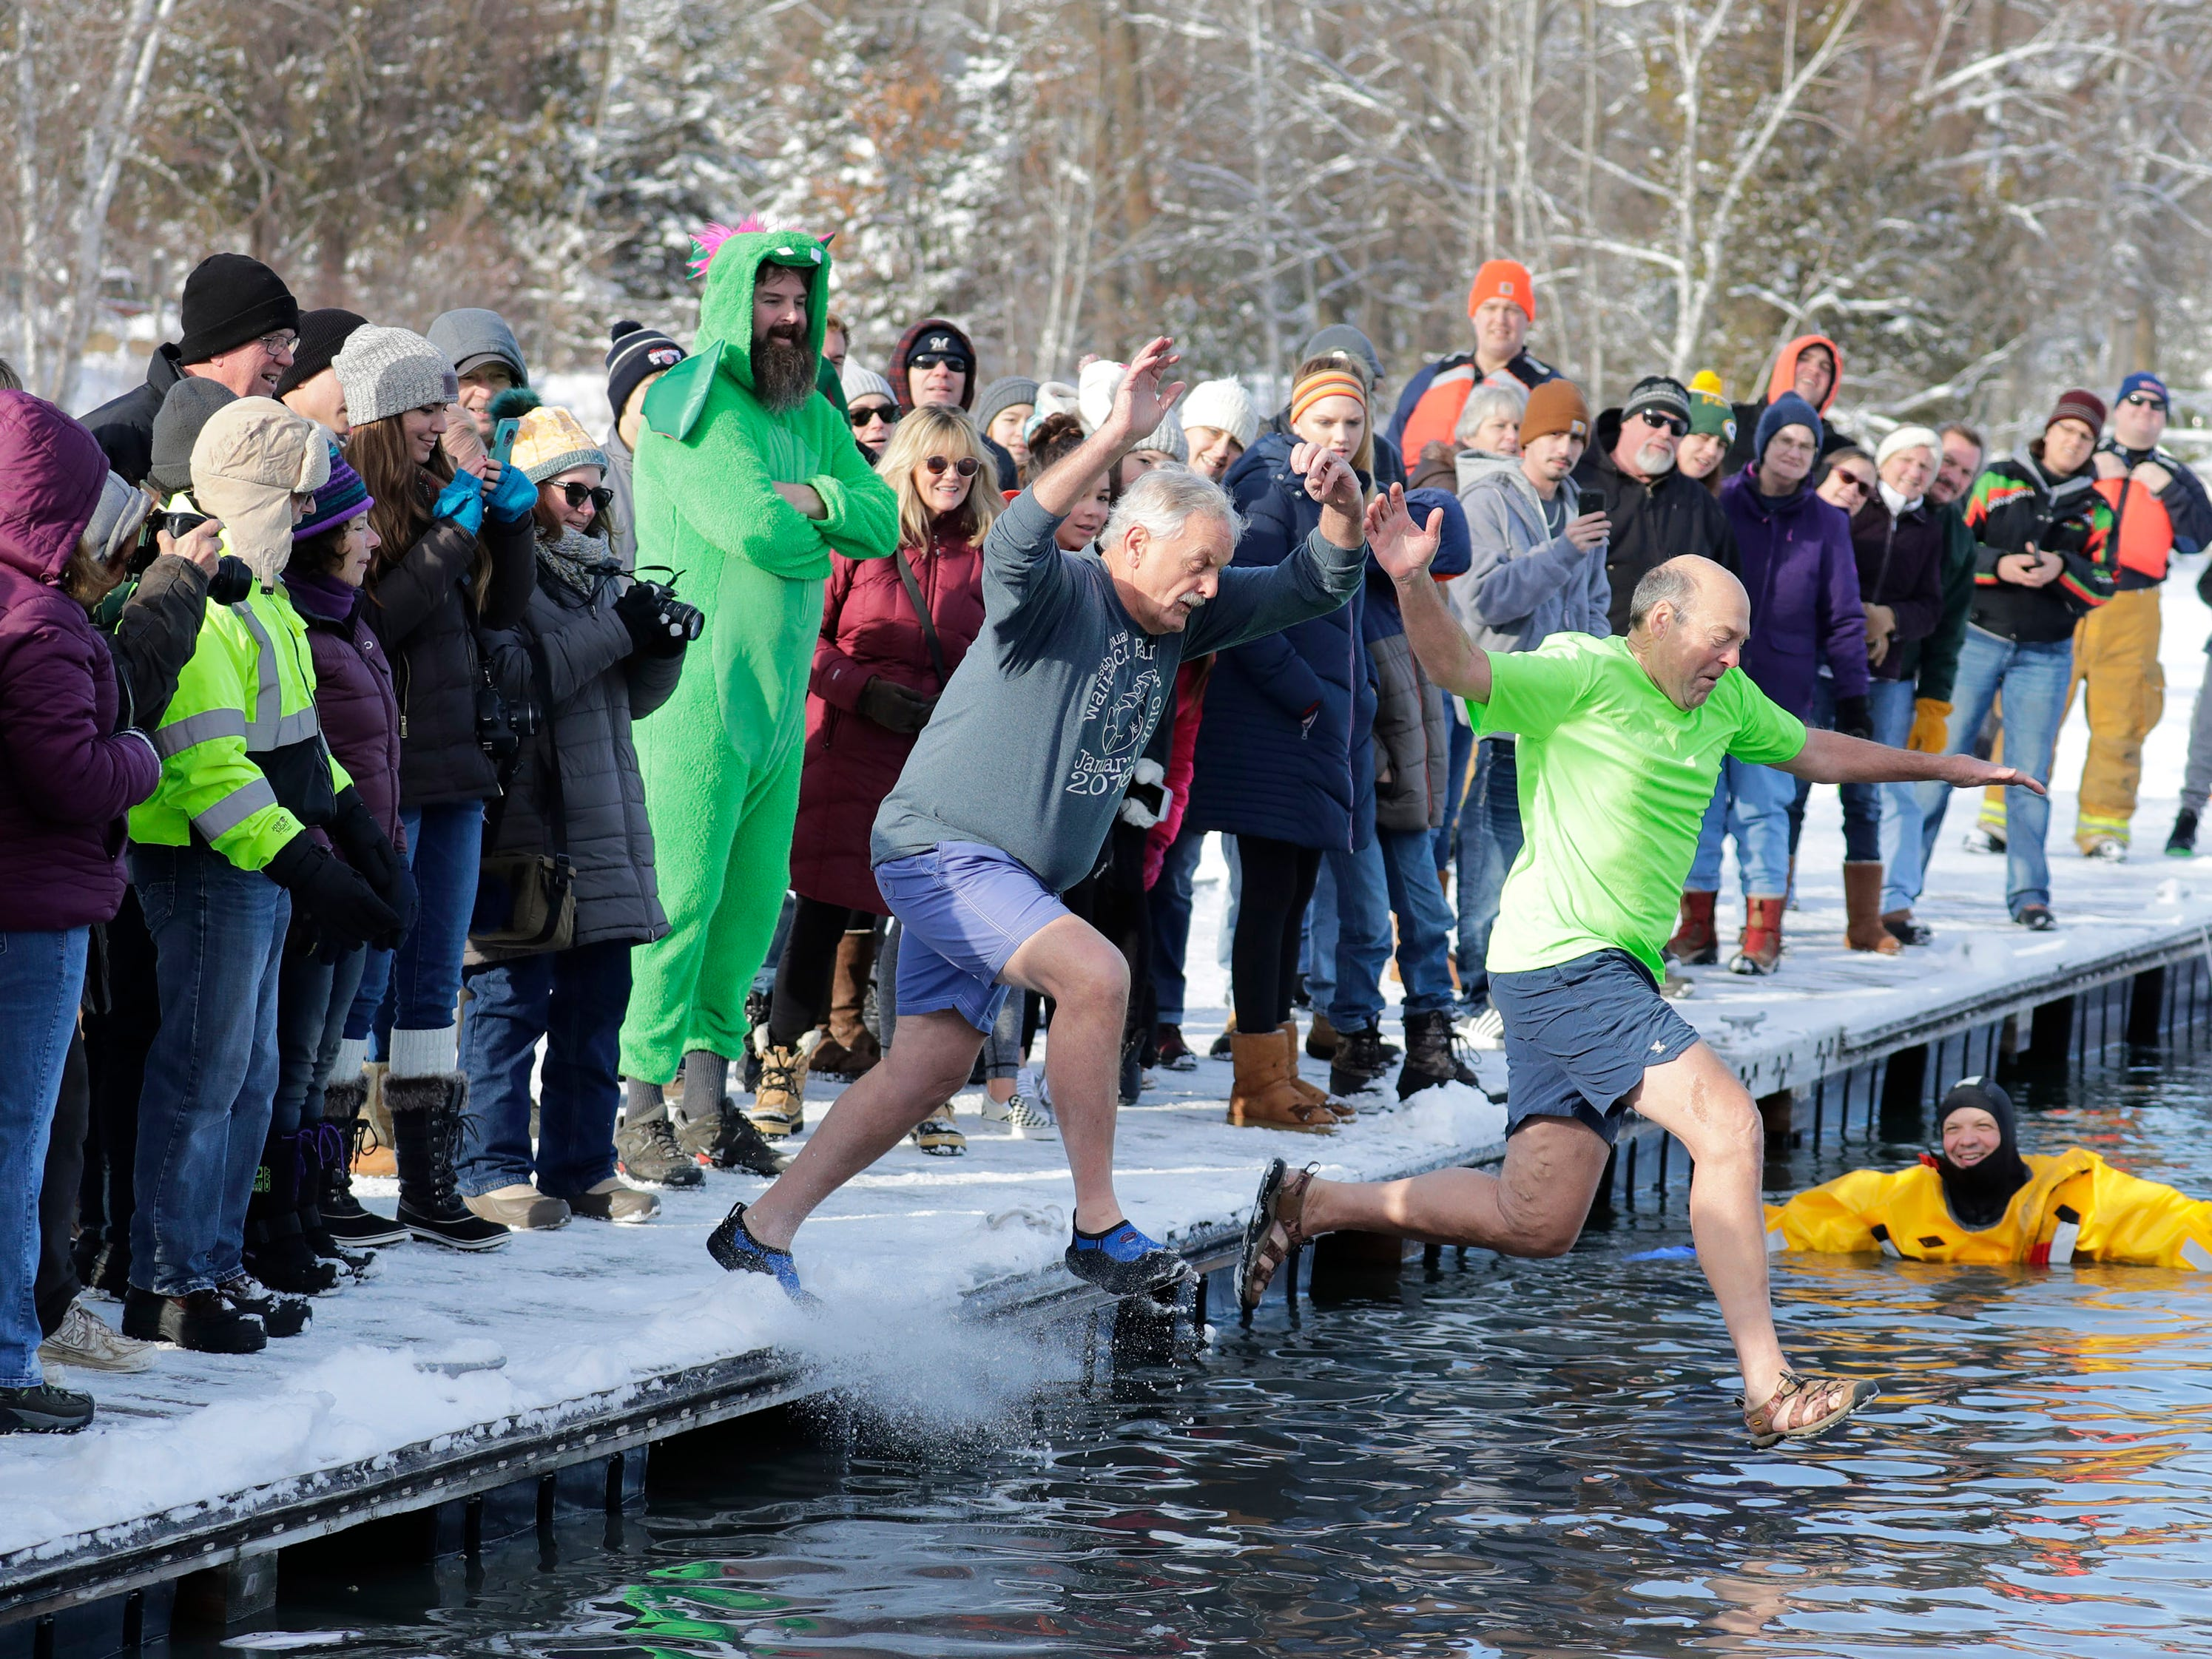 Joe Farmer, left, and Larry Gordon jump into frigid waters during the Polar Bear Plunge at Becker Marine on Lime Kiln Lake in Waupaca, Wis.